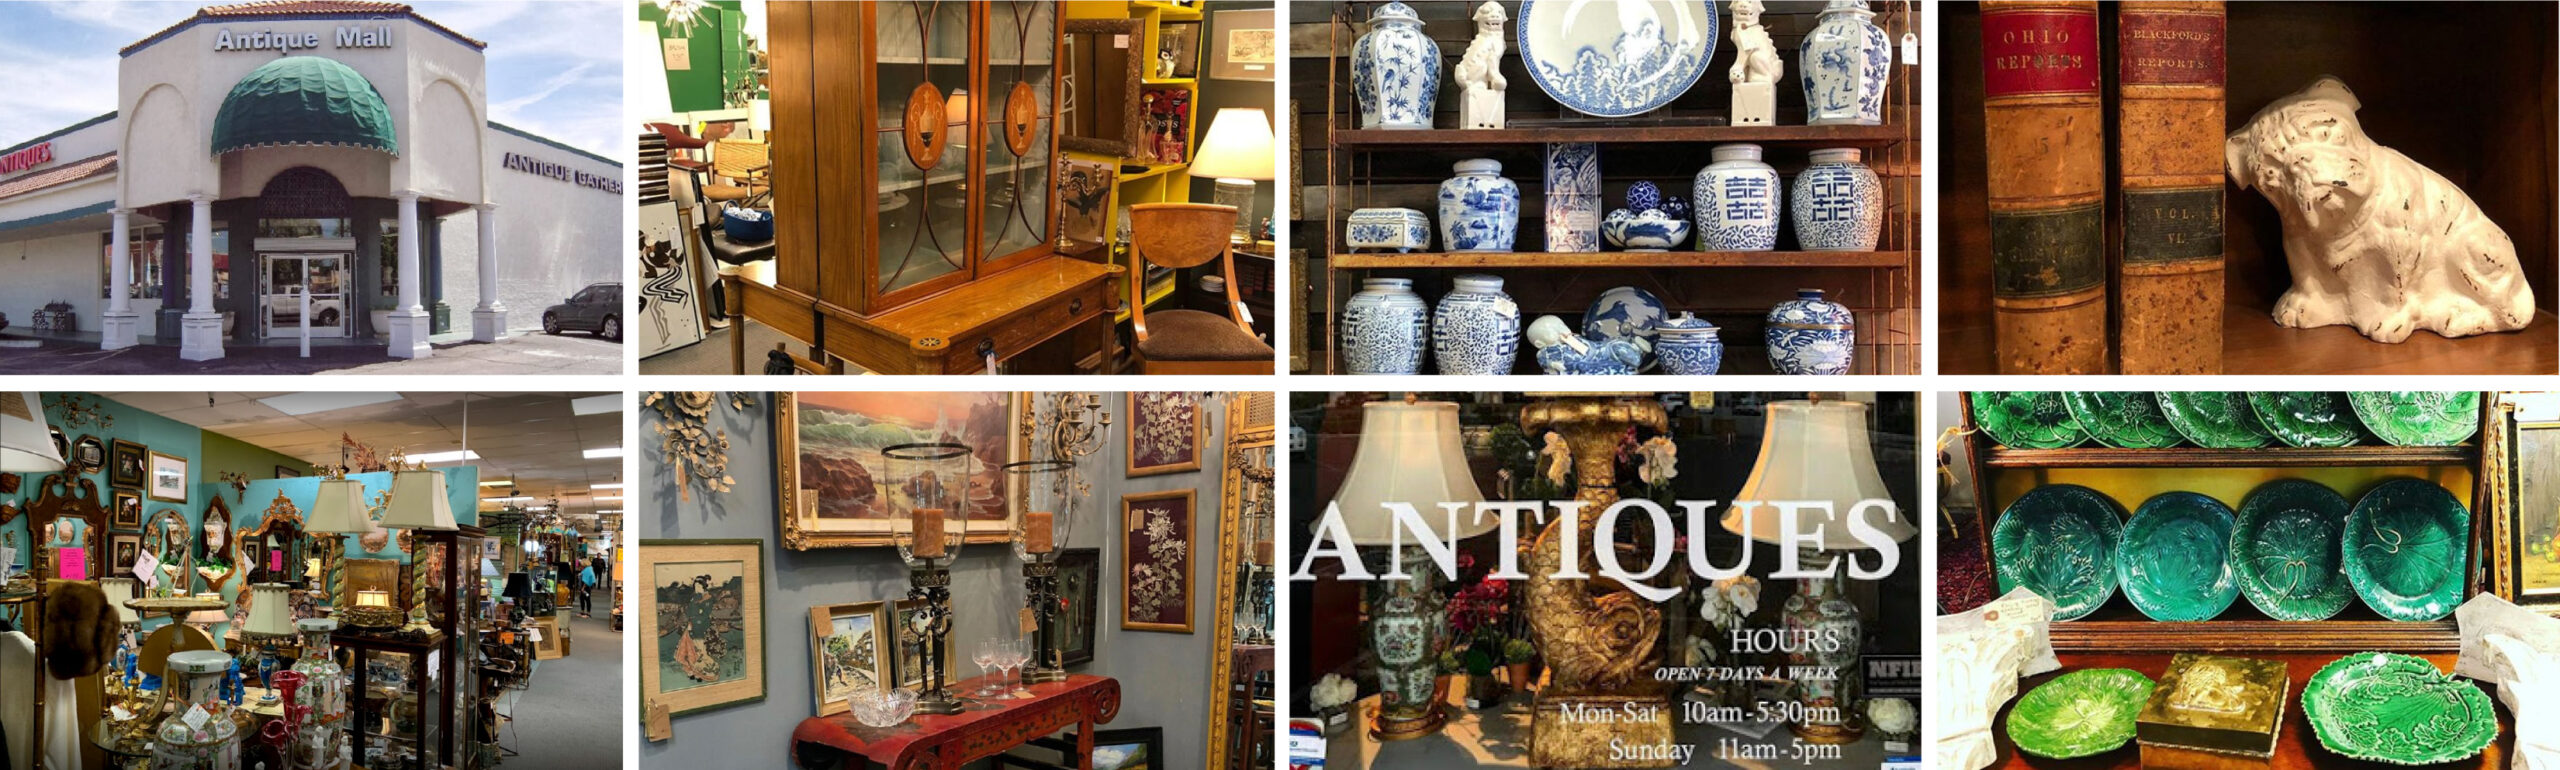 Antique Gatherings is one of the best!